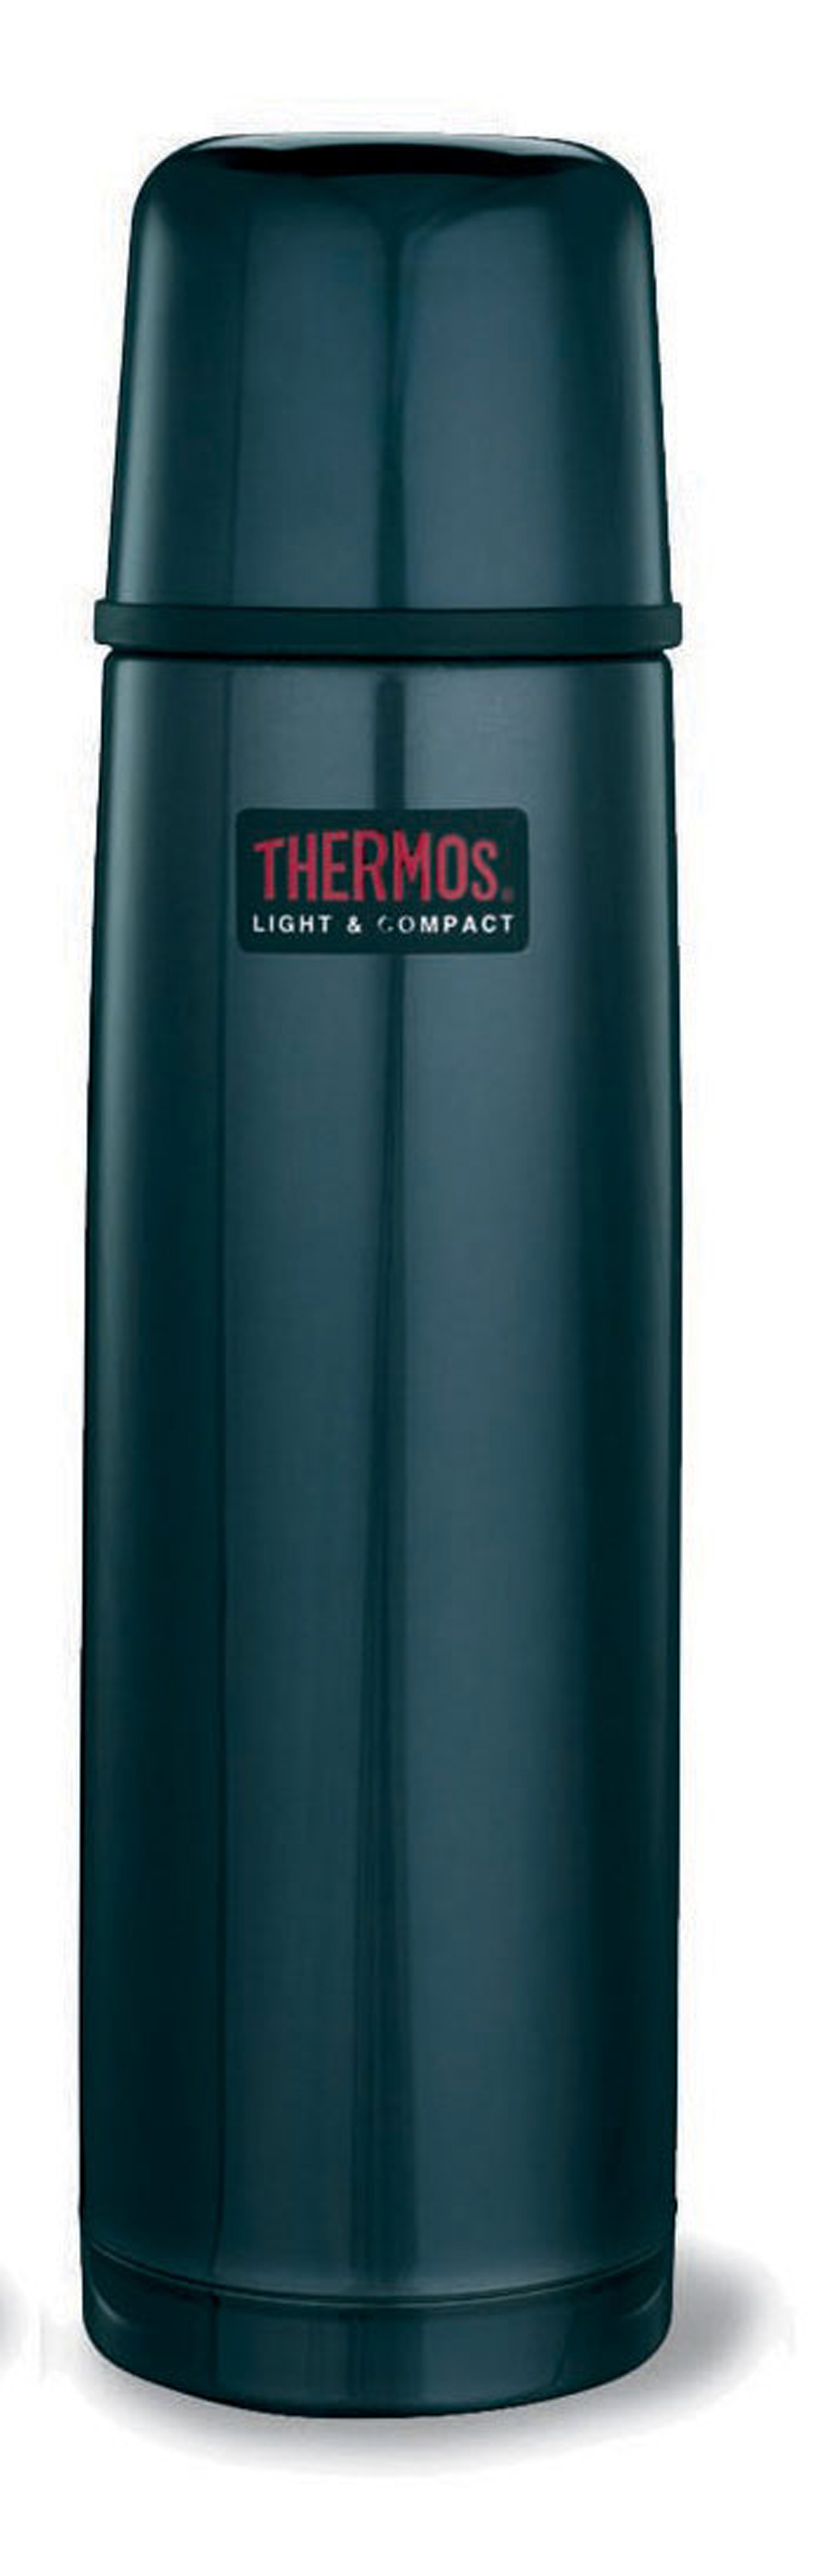 Thermos Fbb750 Midnight Blue juomapullo 0,75L